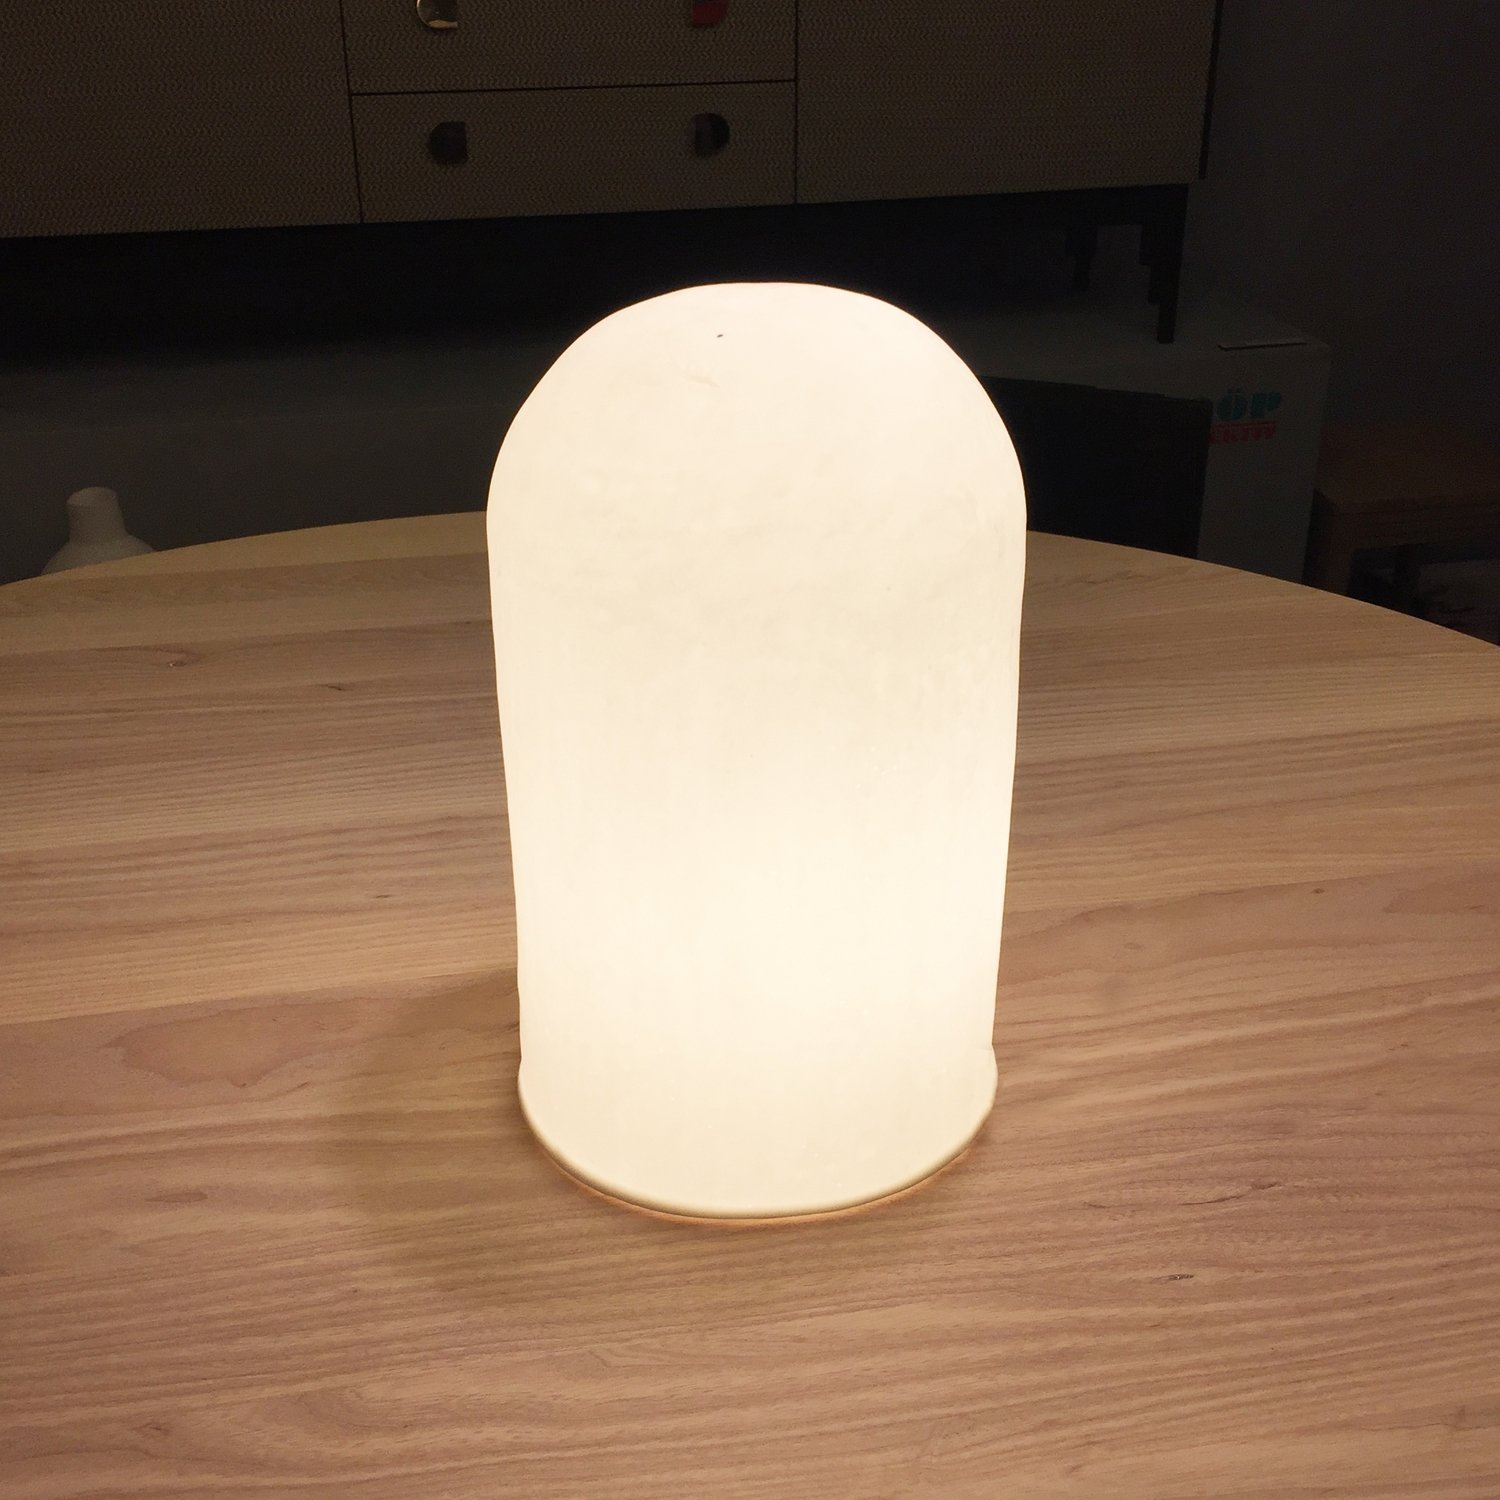 Porcelain table lamp Bone China [31cm] by Gerard Bovenberg.